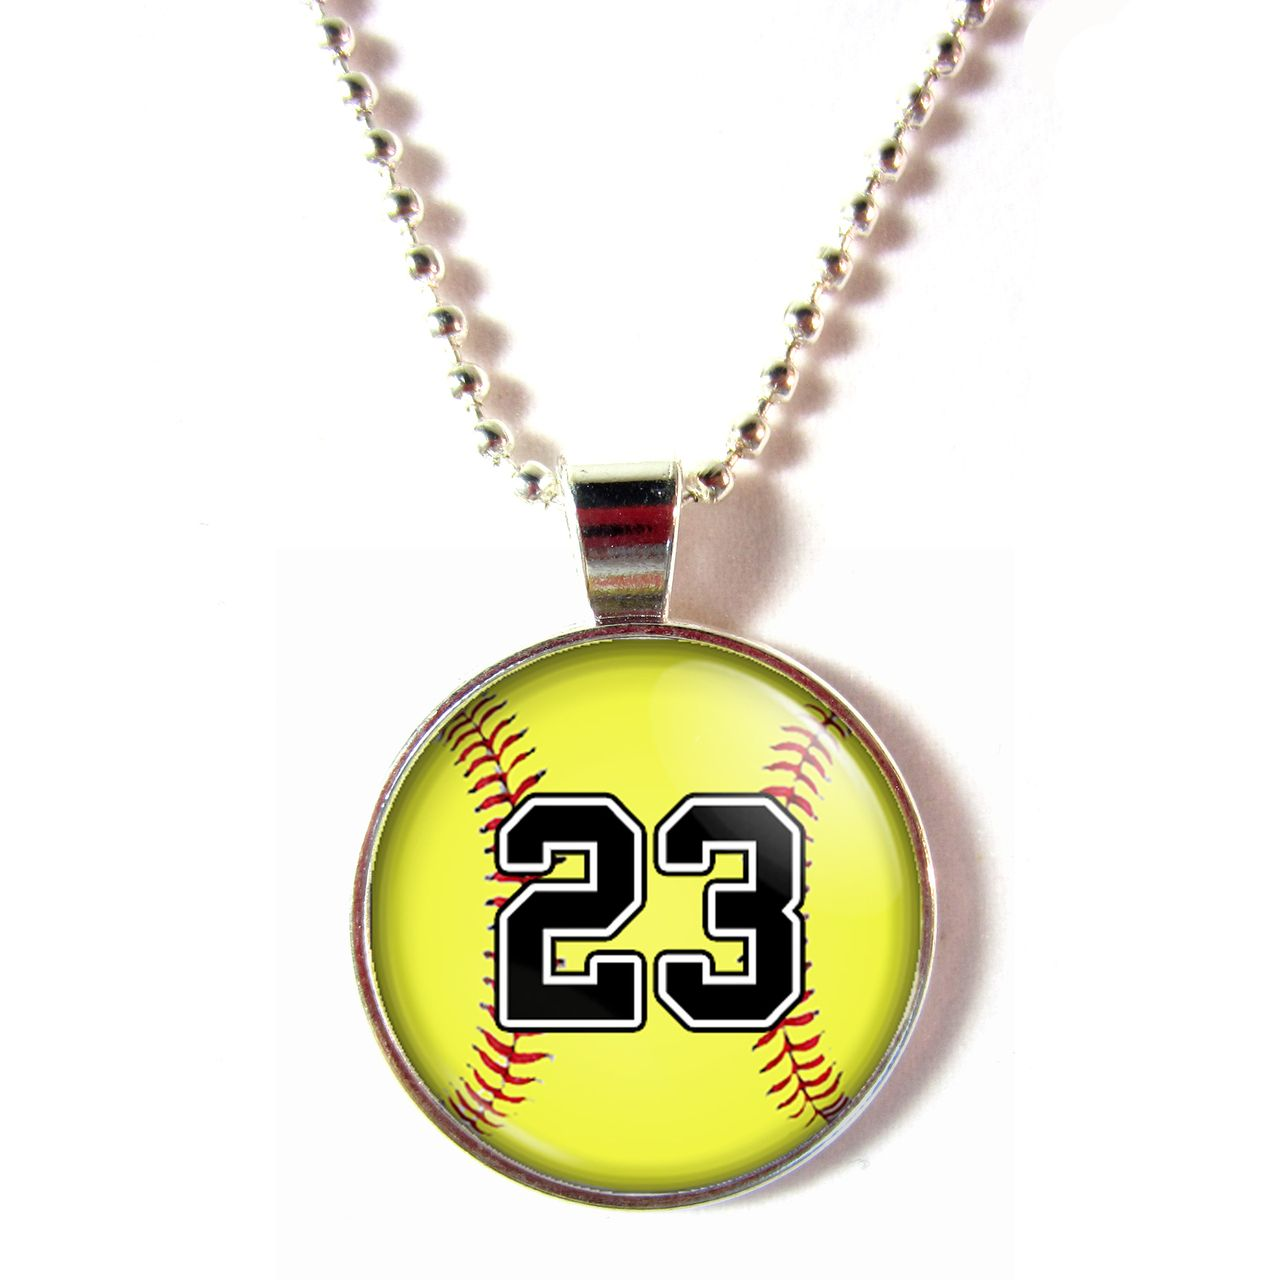 fundraising necklace wholesale i necklaces jewelry softball love closeup n spba team